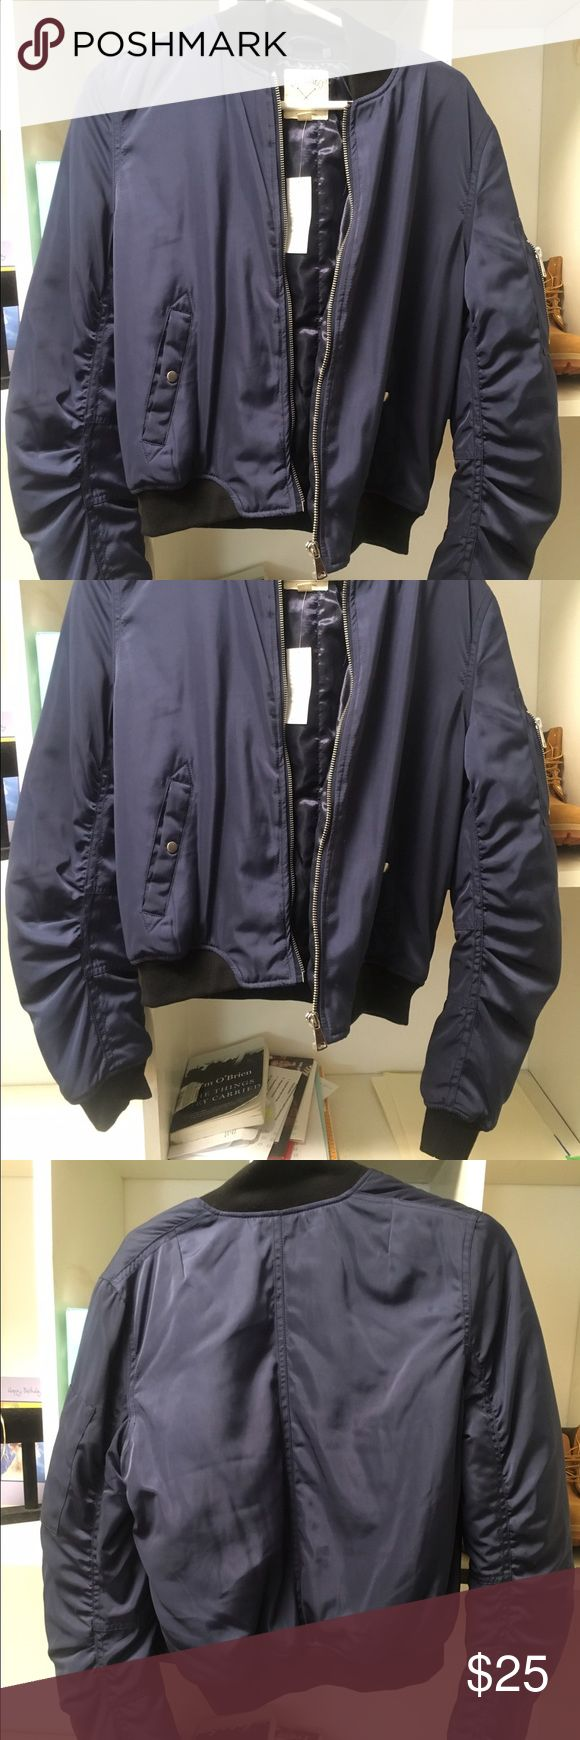 L.A Hearts Navy Bomber Jacket This Navy Blue bomber jacket is very thick and comfy. New conditions with tag LA Hearts Jackets & Coats